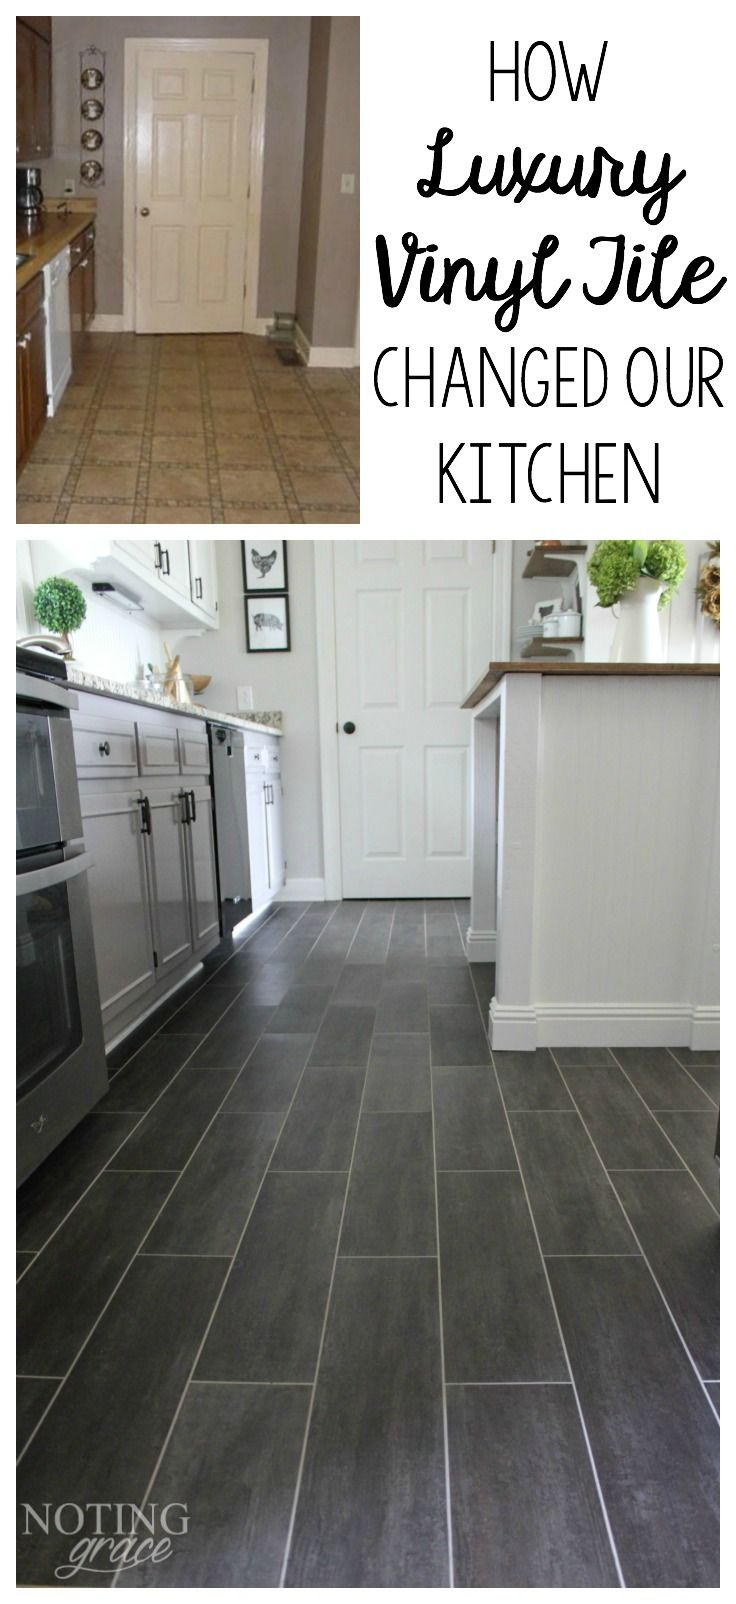 Plastic Floor Tiles Kitchen 17 Best Ideas About Vinyl Flooring On Pinterest Wood Flooring